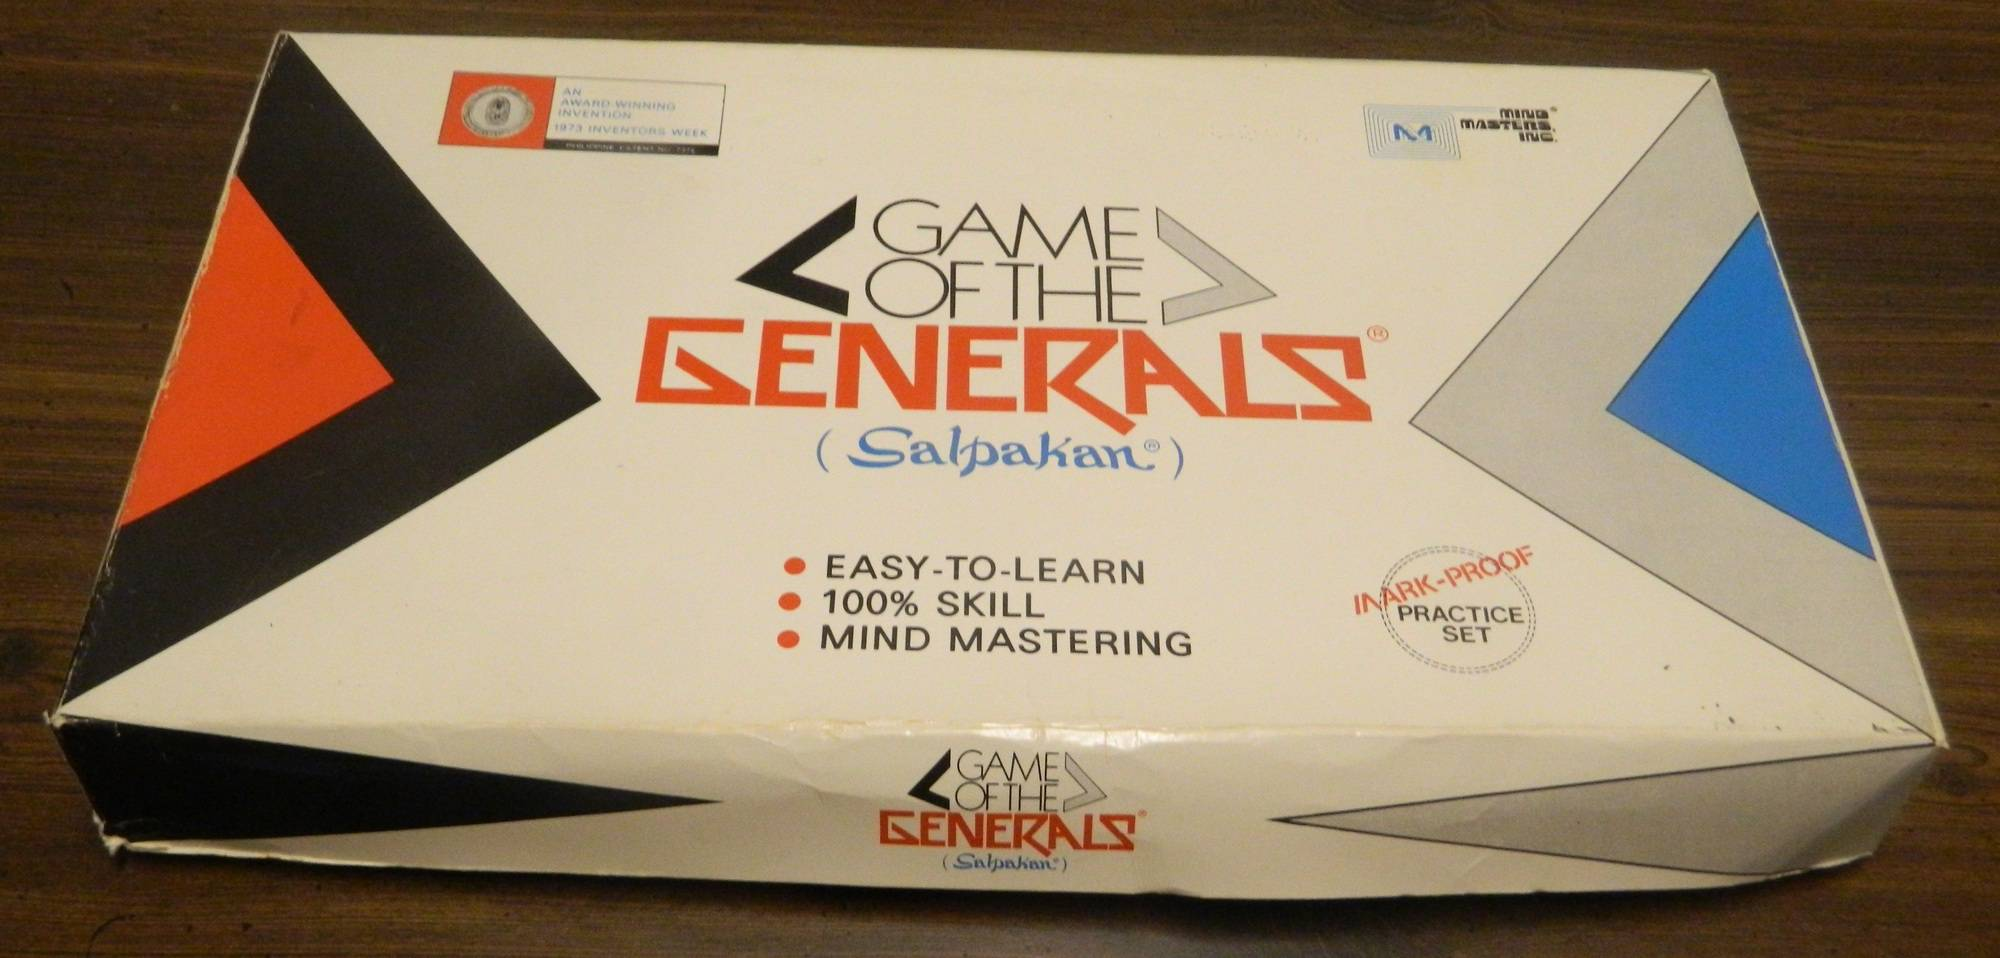 Box for Game of the Generals